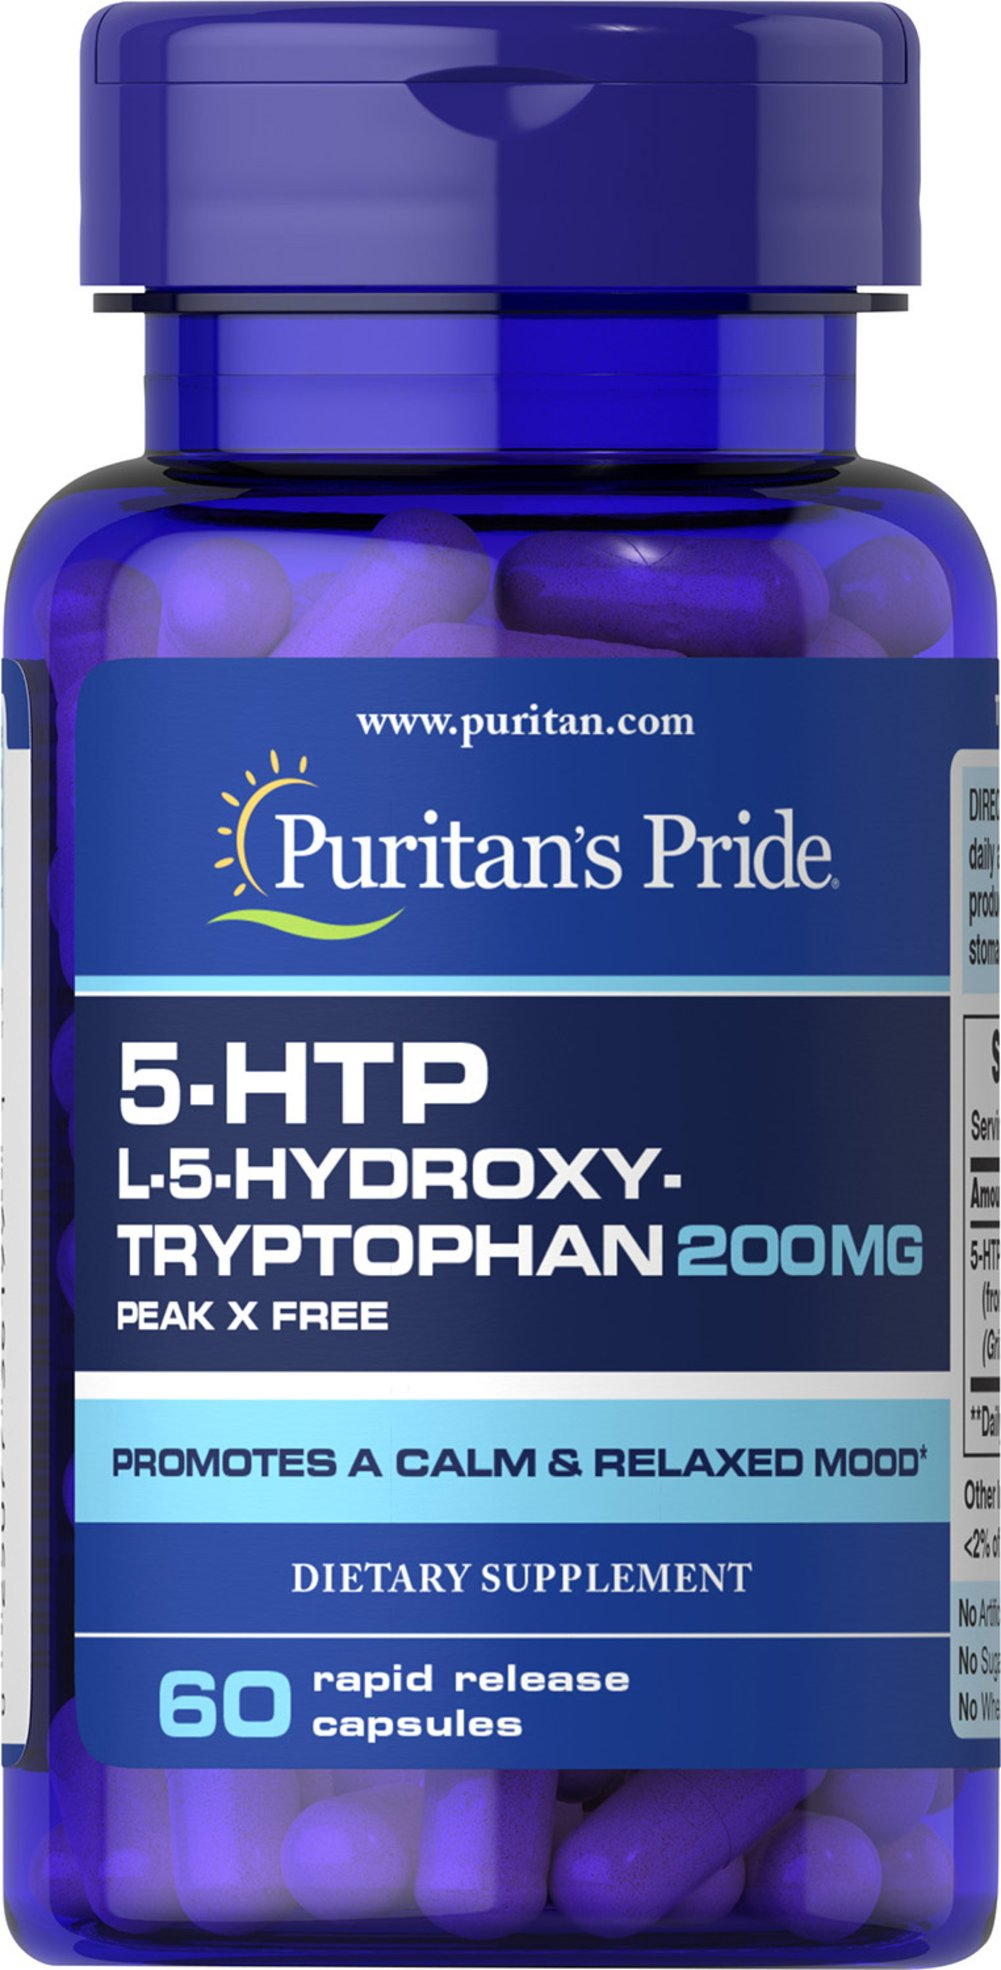 5-HTP 200 mg (Griffonia Simplicifolia) Thumbnail Alternate Bottle View